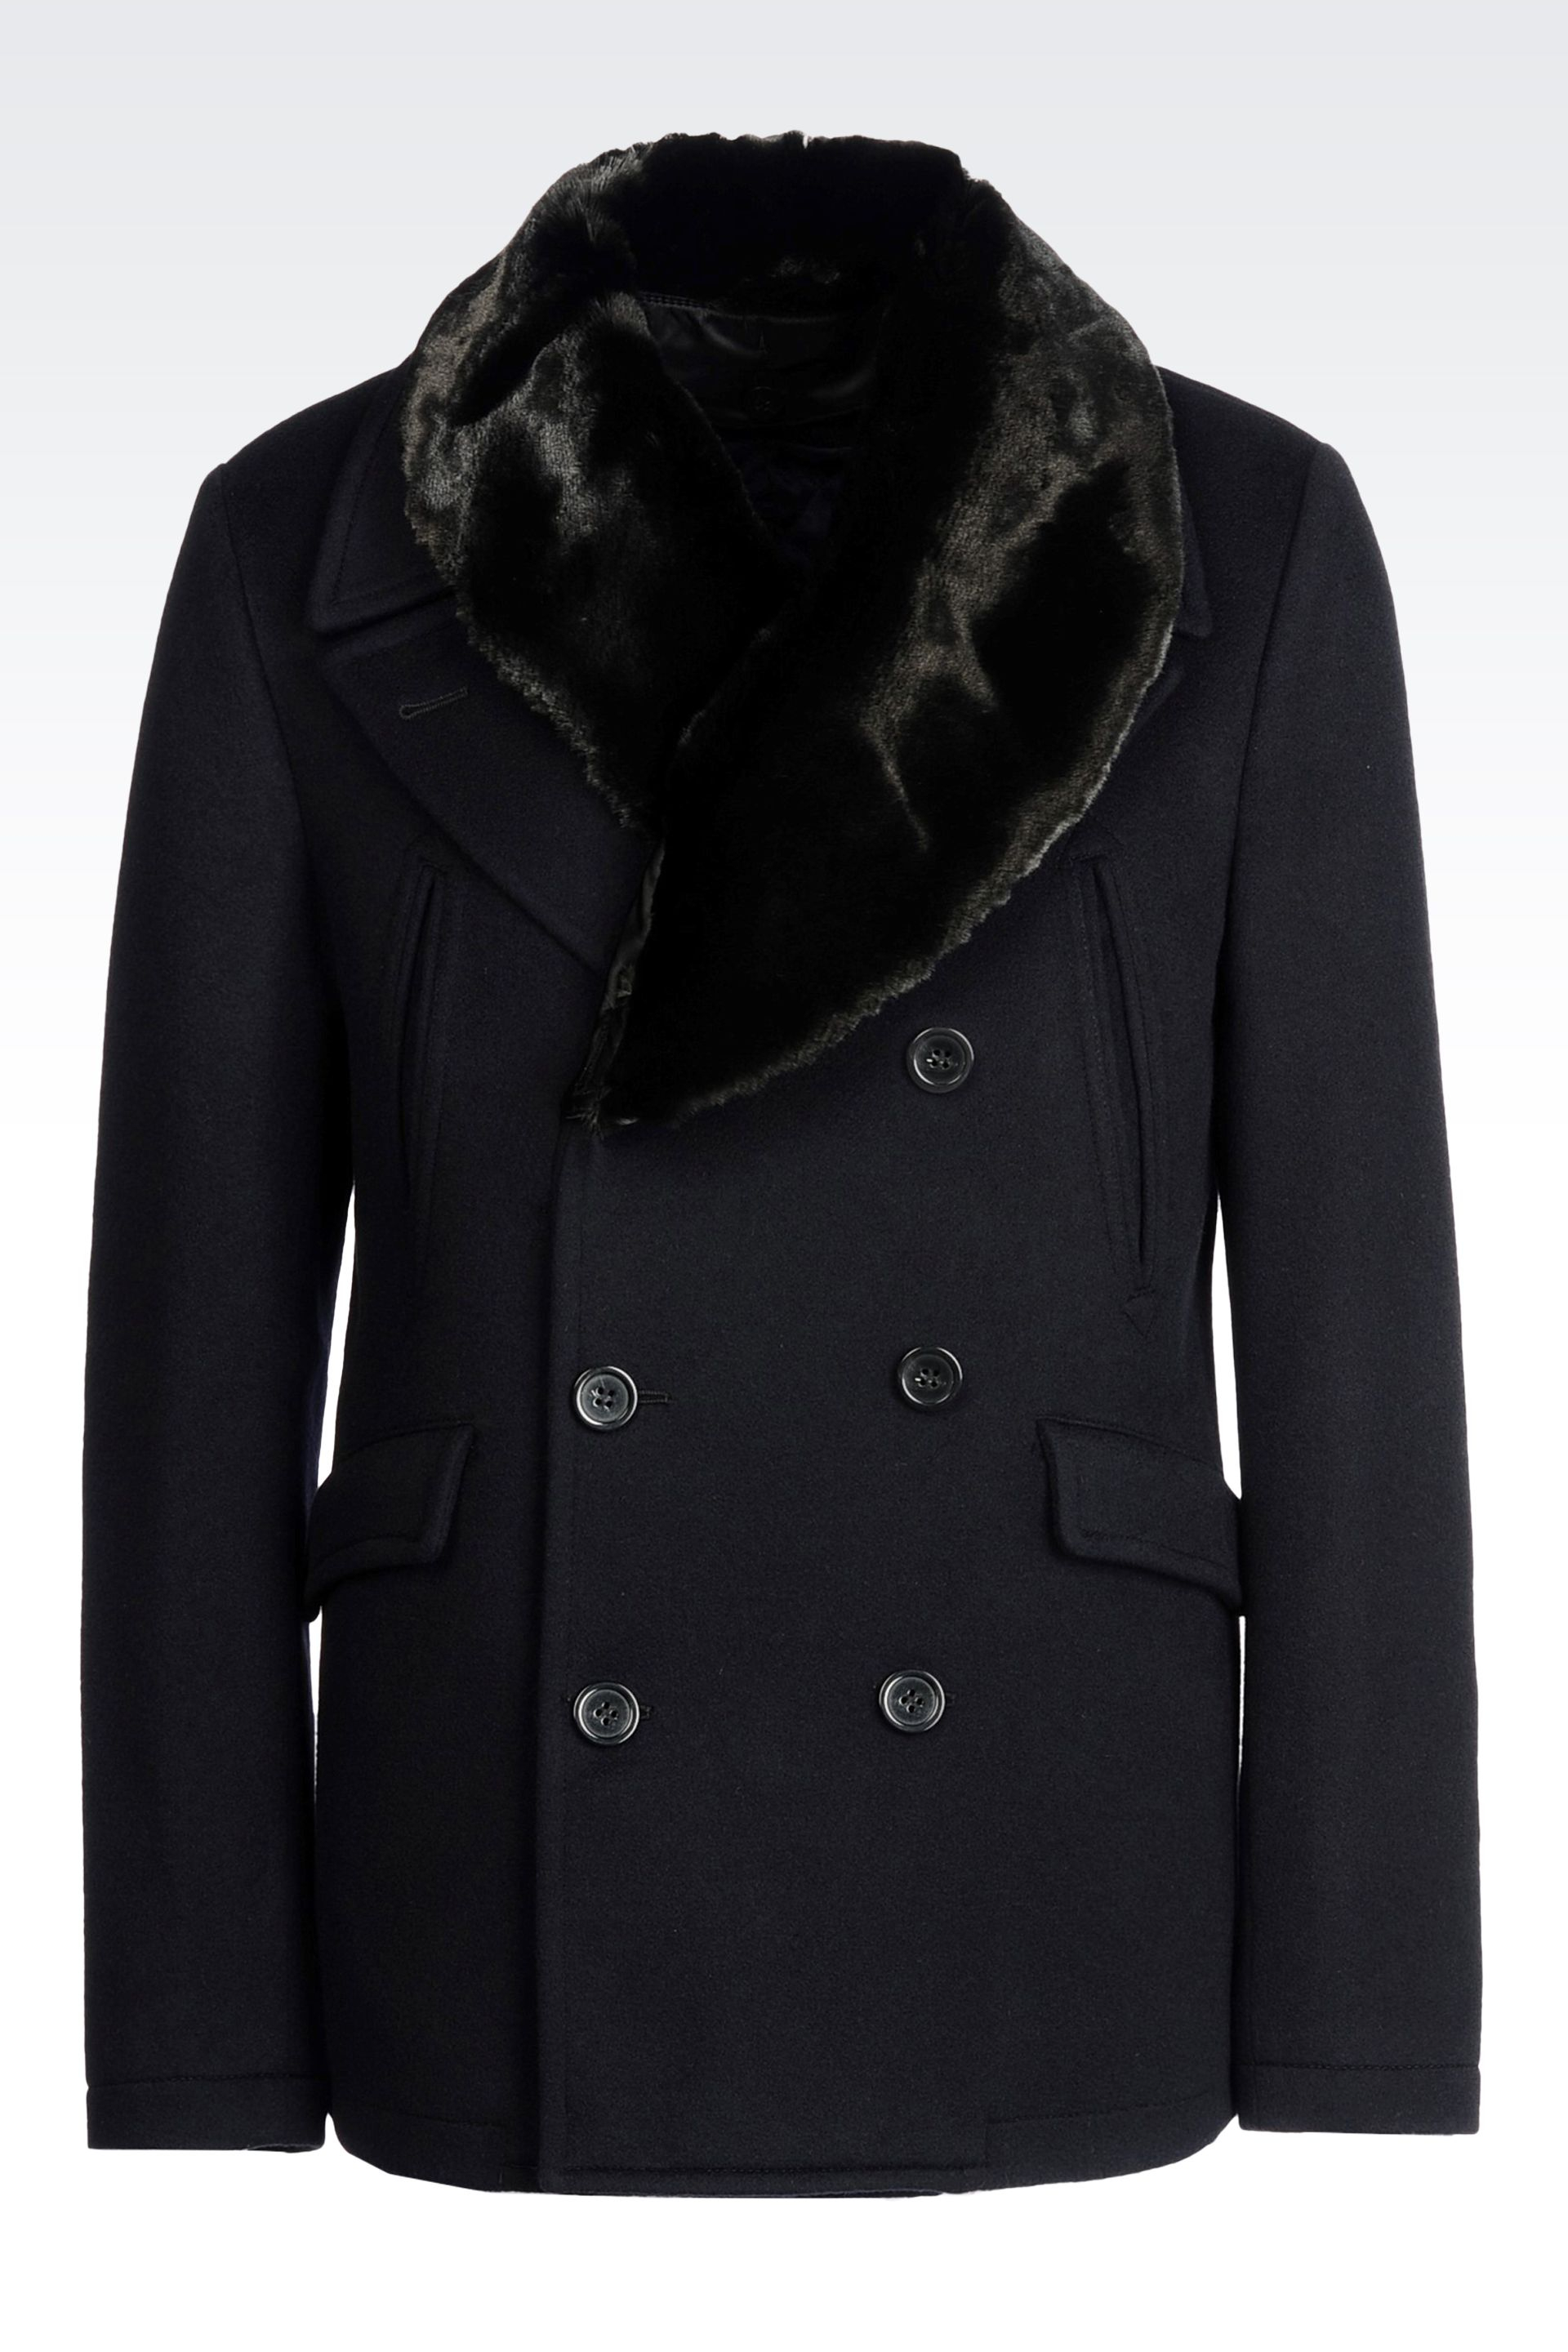 Bleu Double Breasted Giorgio Armani Trimmed Coat Fur I6qzwx